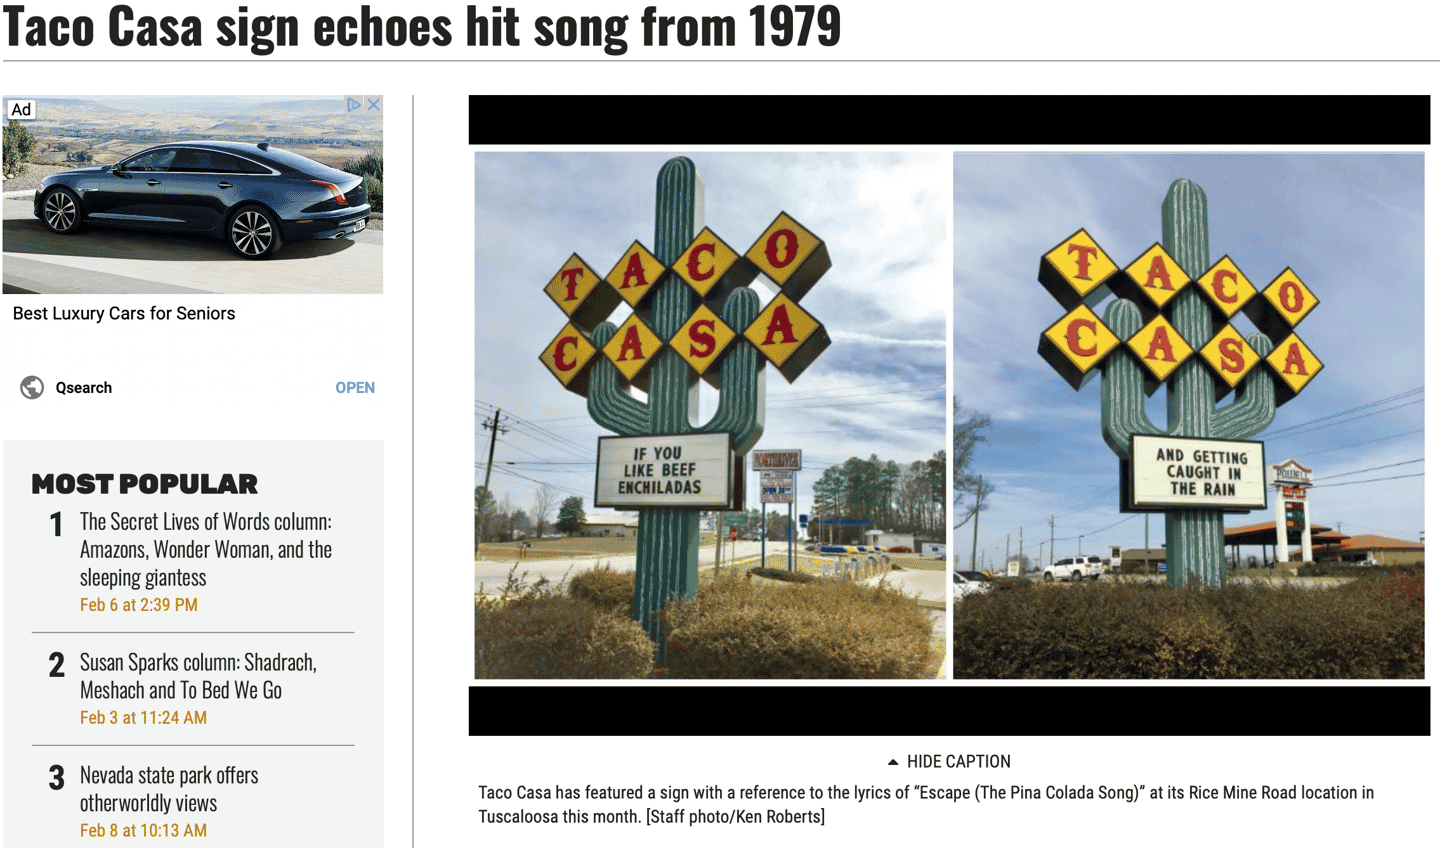 Taco Casa sign echoes hit song from 1979 (The Tuscaloosa News)